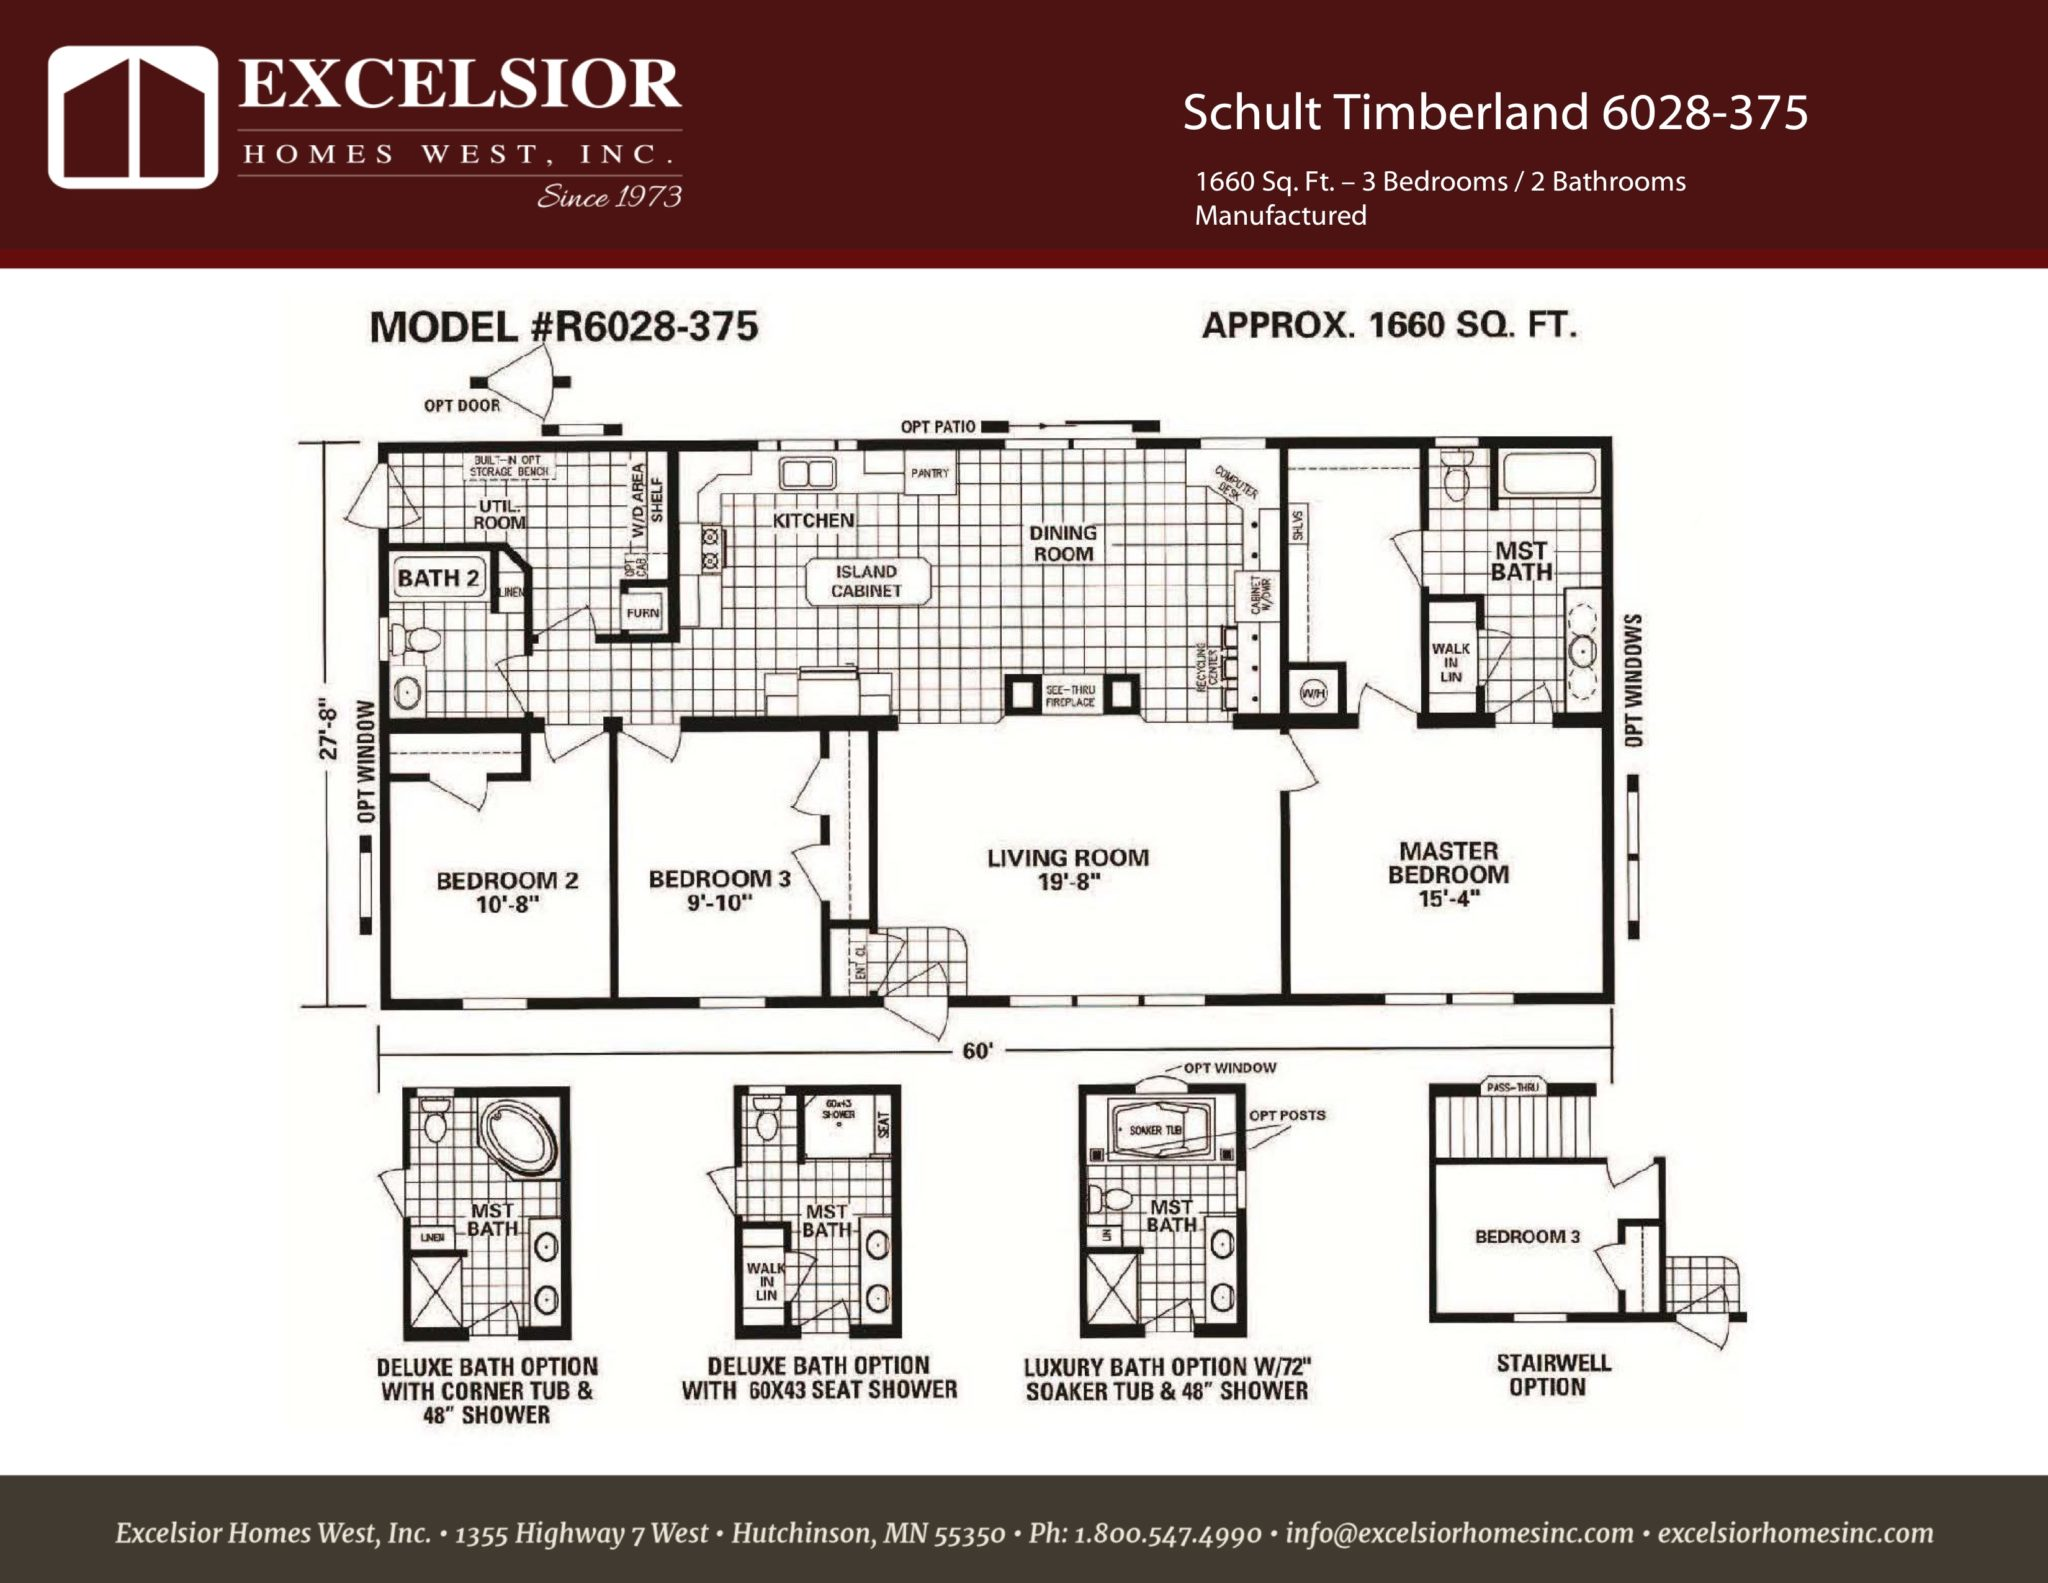 Schult Timberland 6028375 ModularManufactured Home